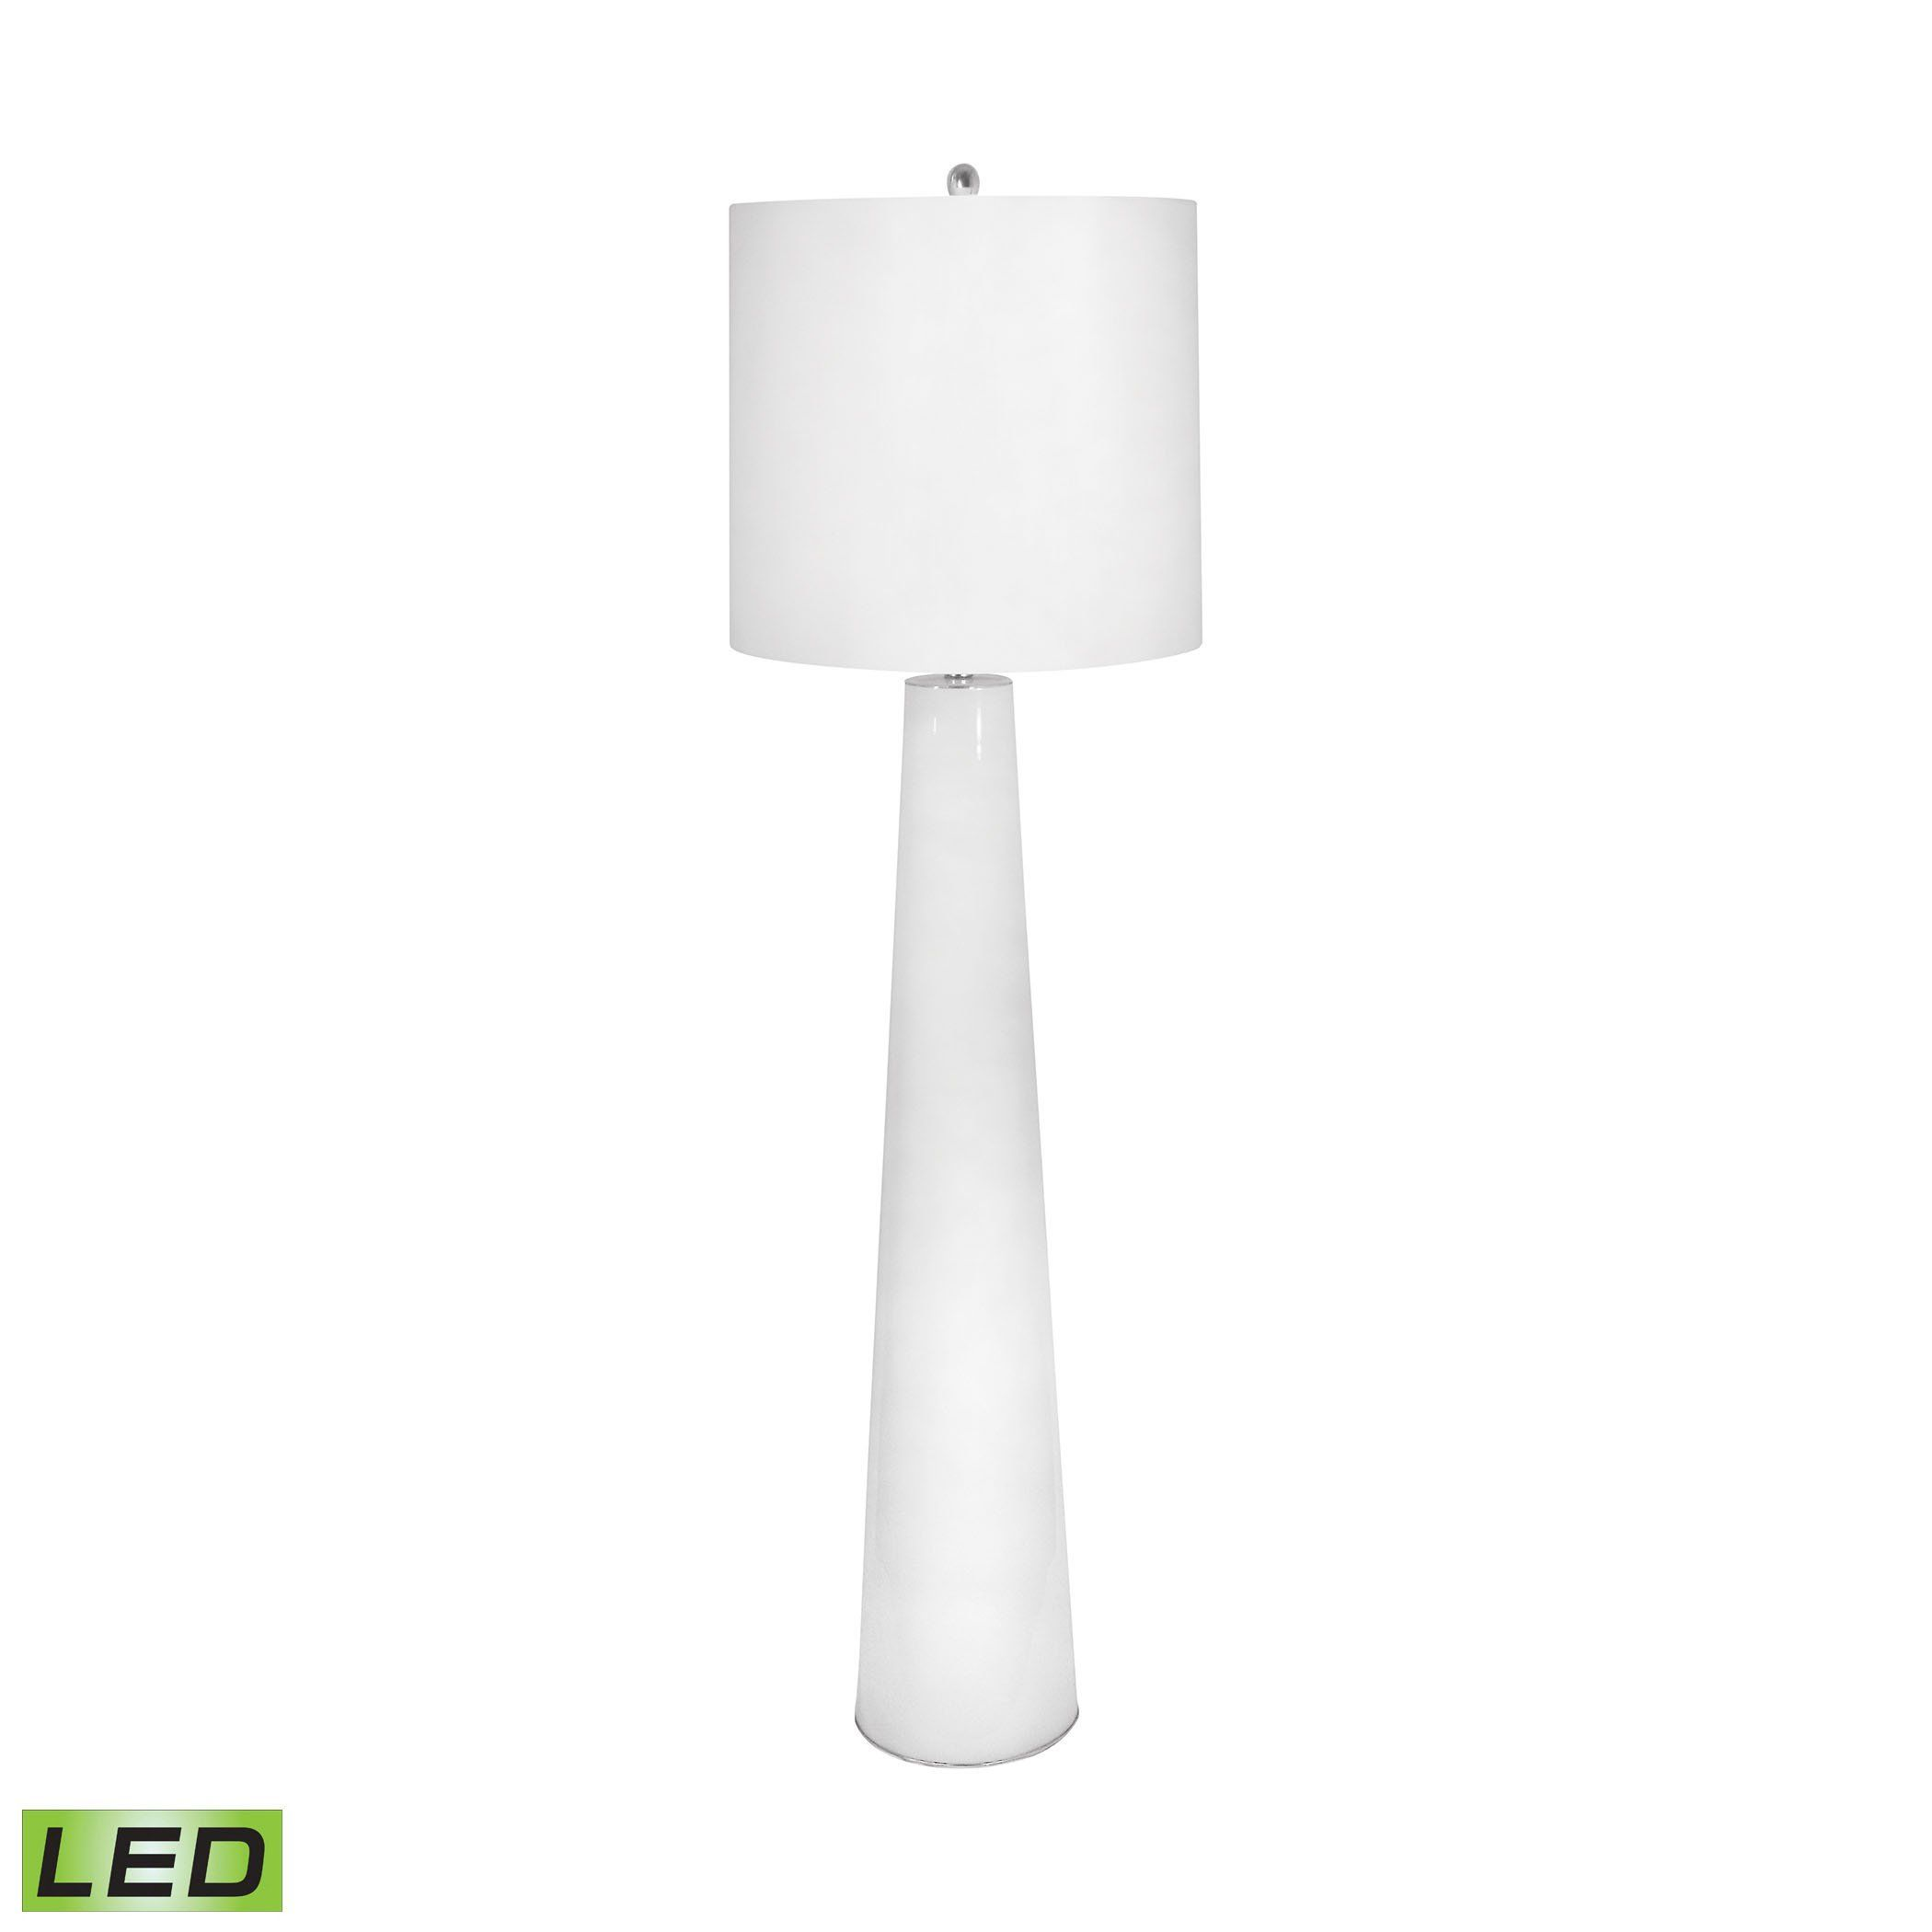 White Obelisk Led Floor Lamp With Night Light Products Terrazzo